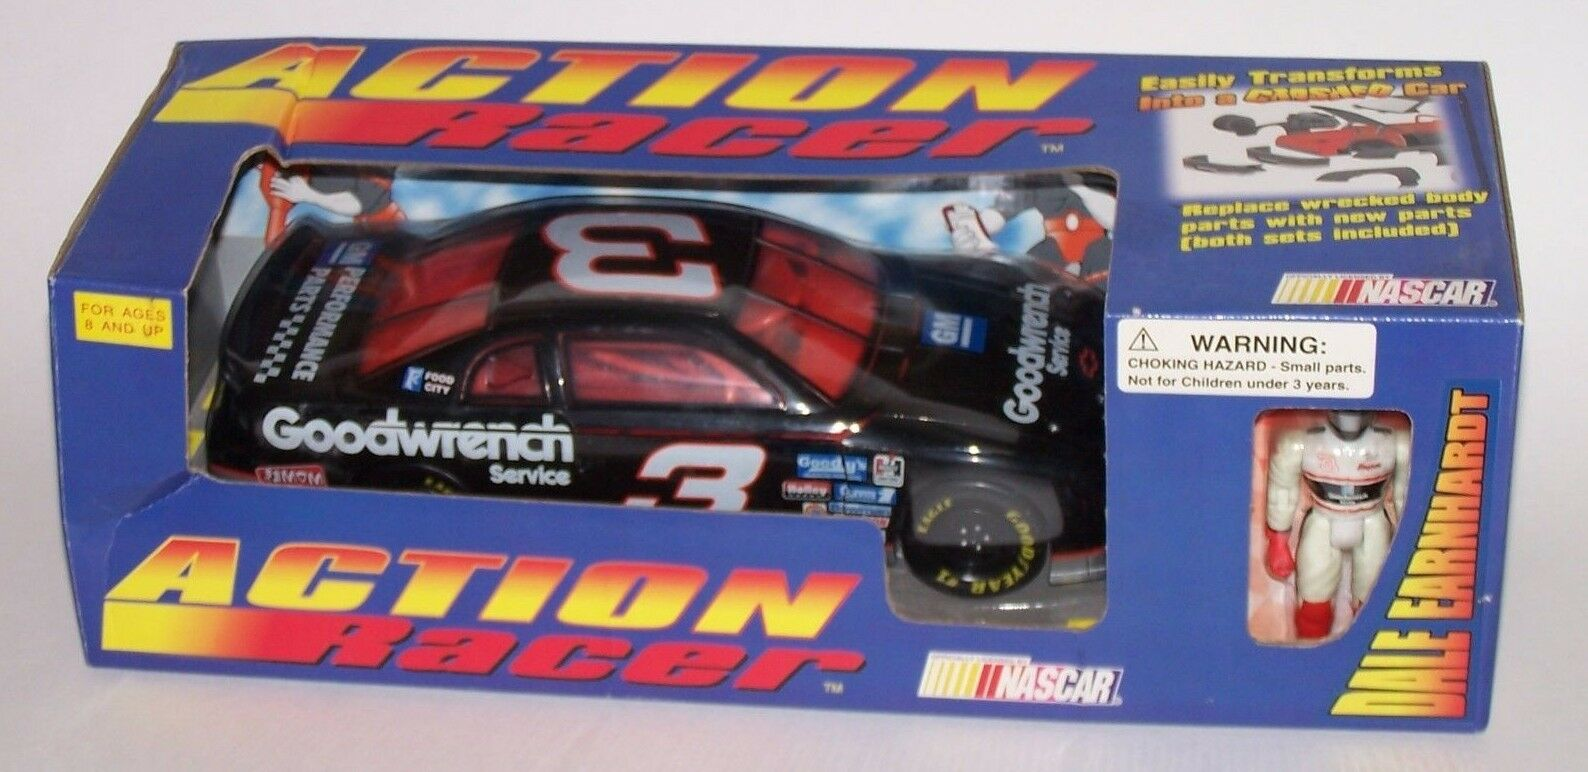 Dale Earnhardt 1996  3 GM GOODWRENCH 1 18 ACTION RACER avec Figure New in Box